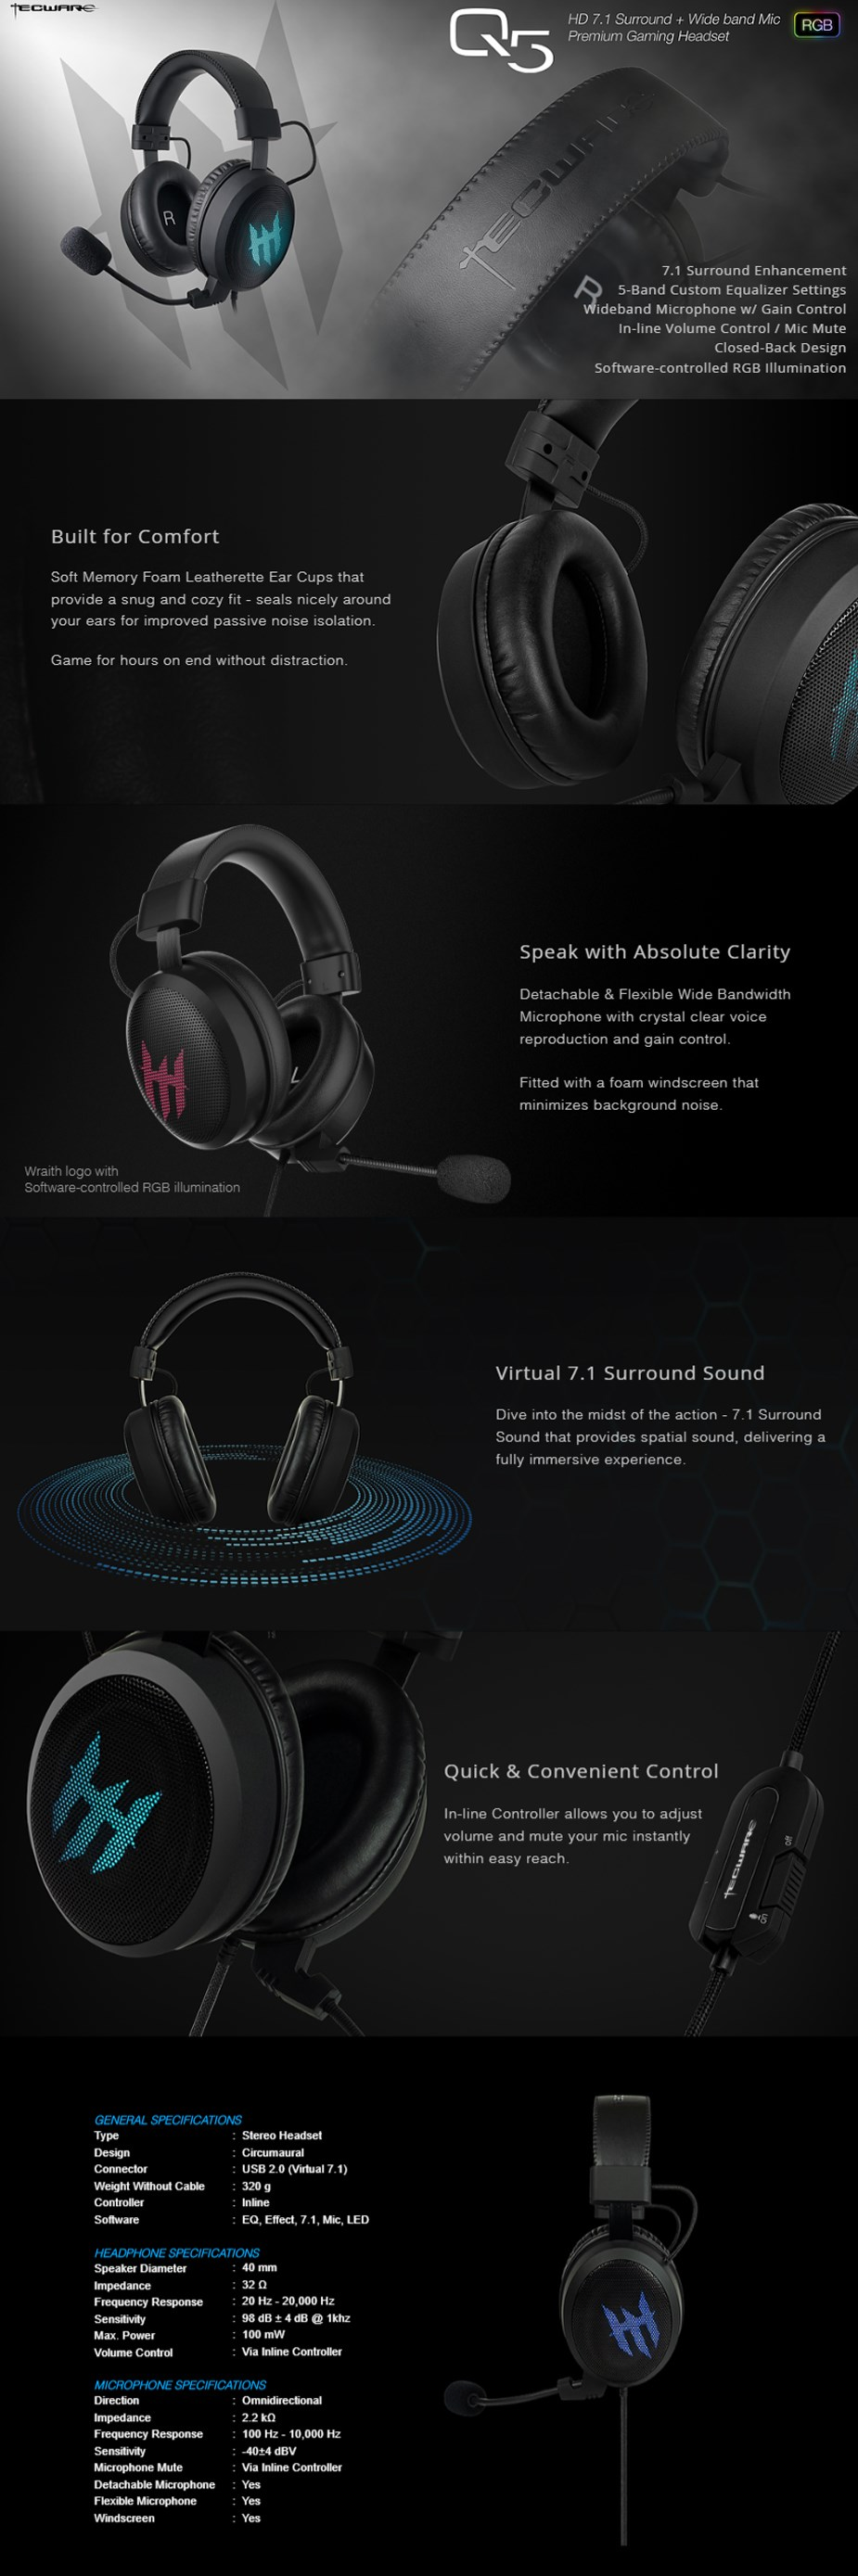 Tecware Q5 7.1 Surround Sound RGB Gaming Headset